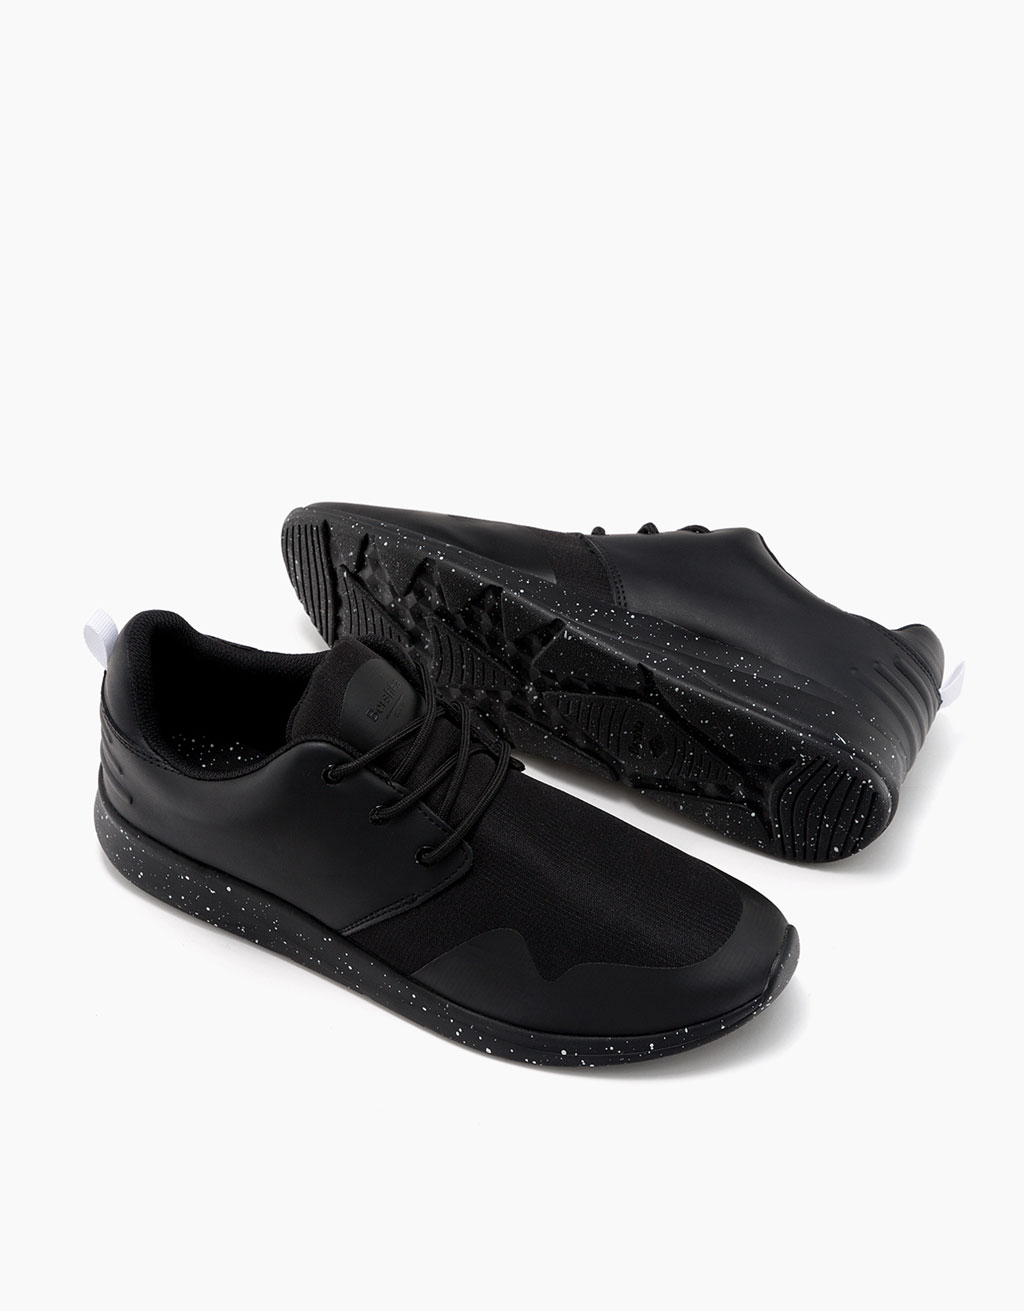 Men's flecked sole technical sports shoes